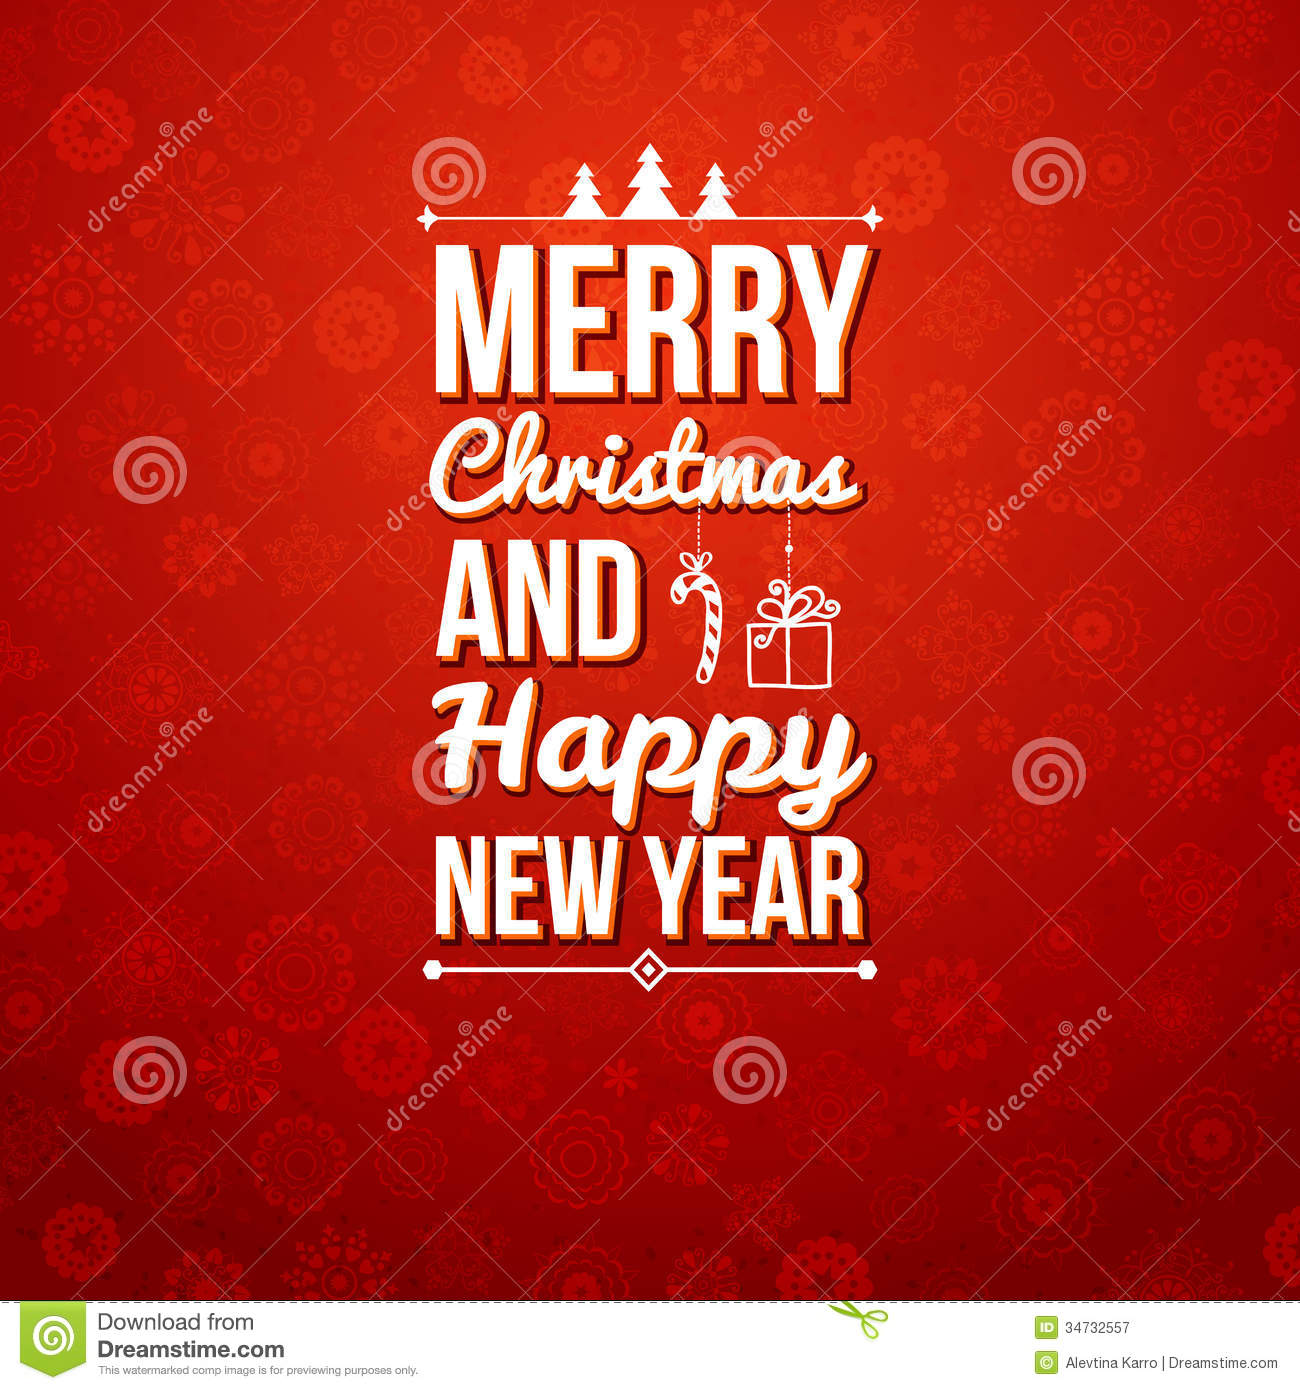 merry christmas and happy new year card holiday background and lettering can be easily used together or separately vector illustration